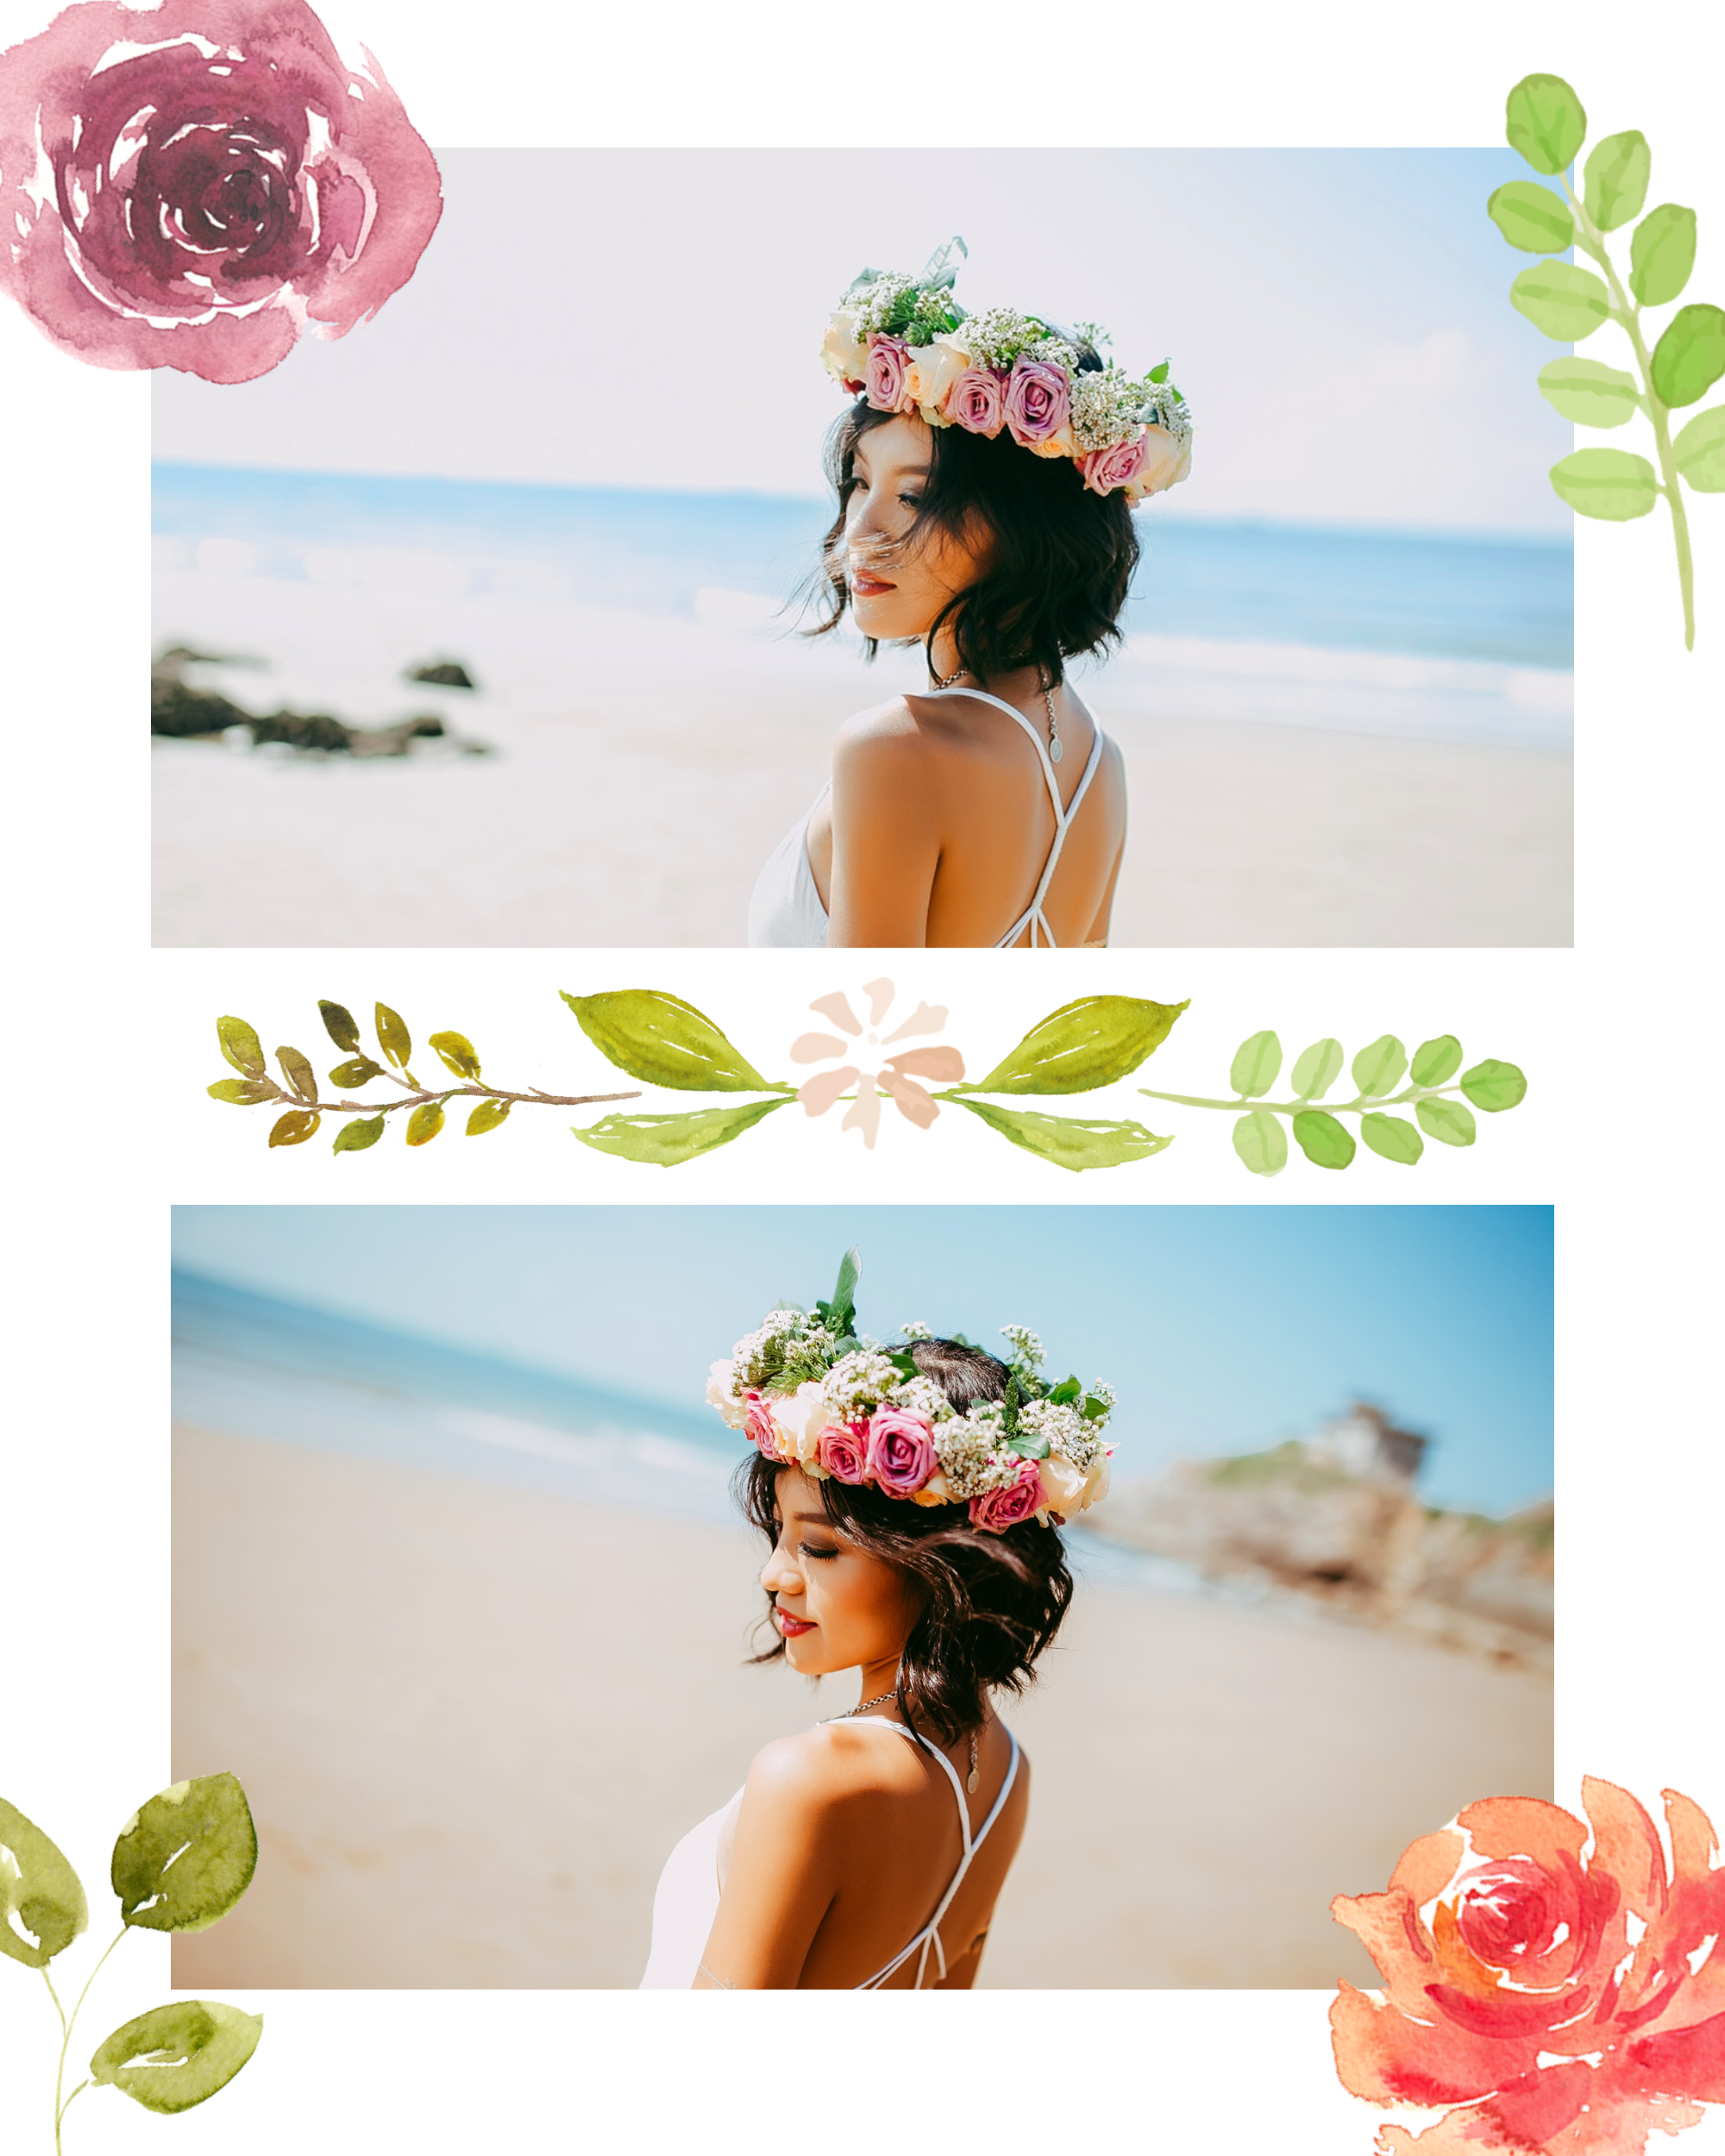 #pastelflowers post collection - PostMuse Instagram Post Template